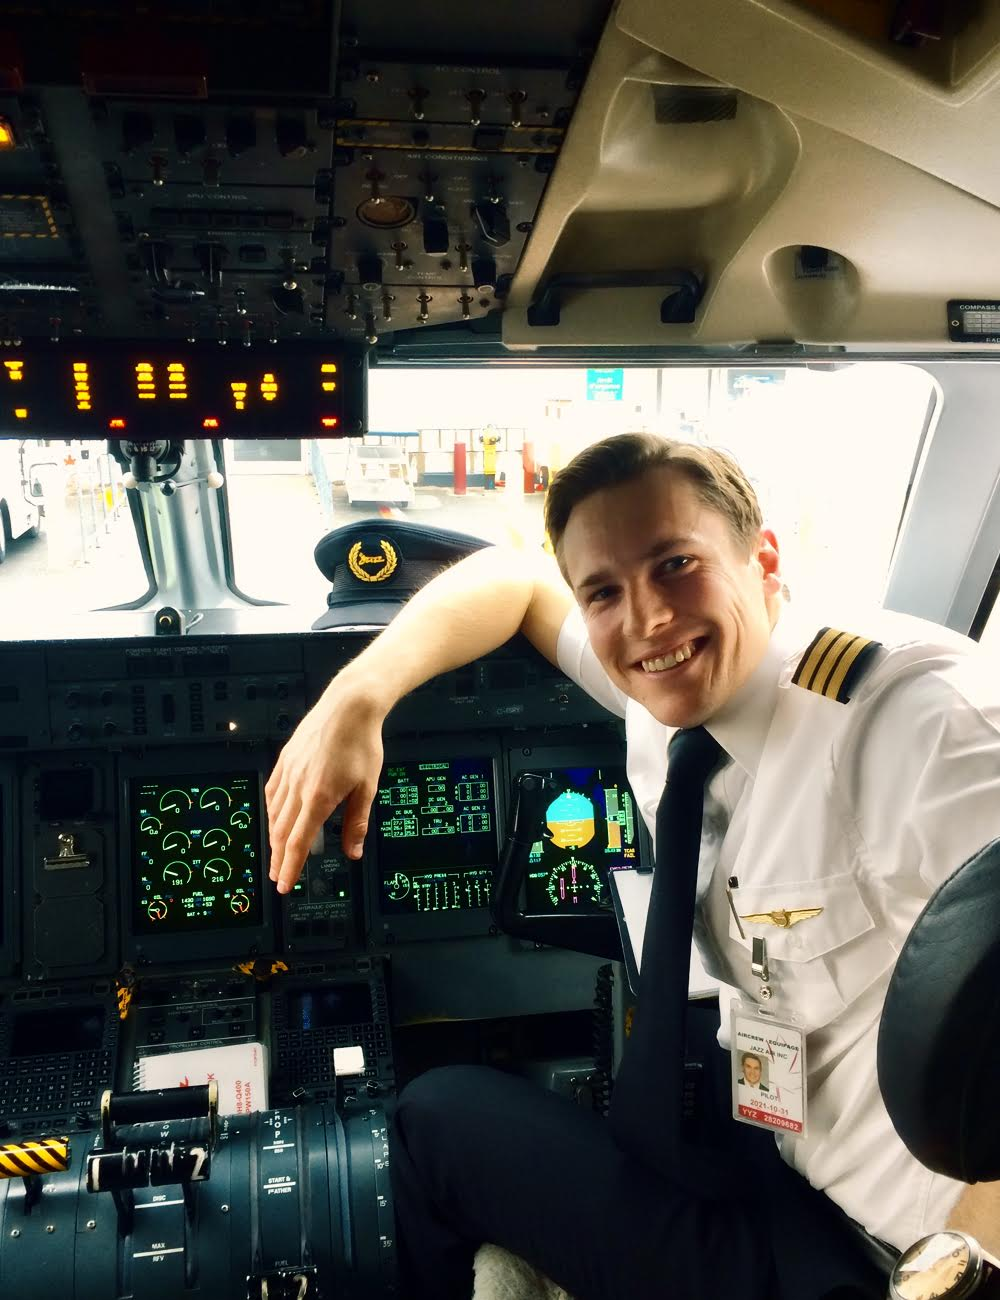 Pilot smiling in cockpit.